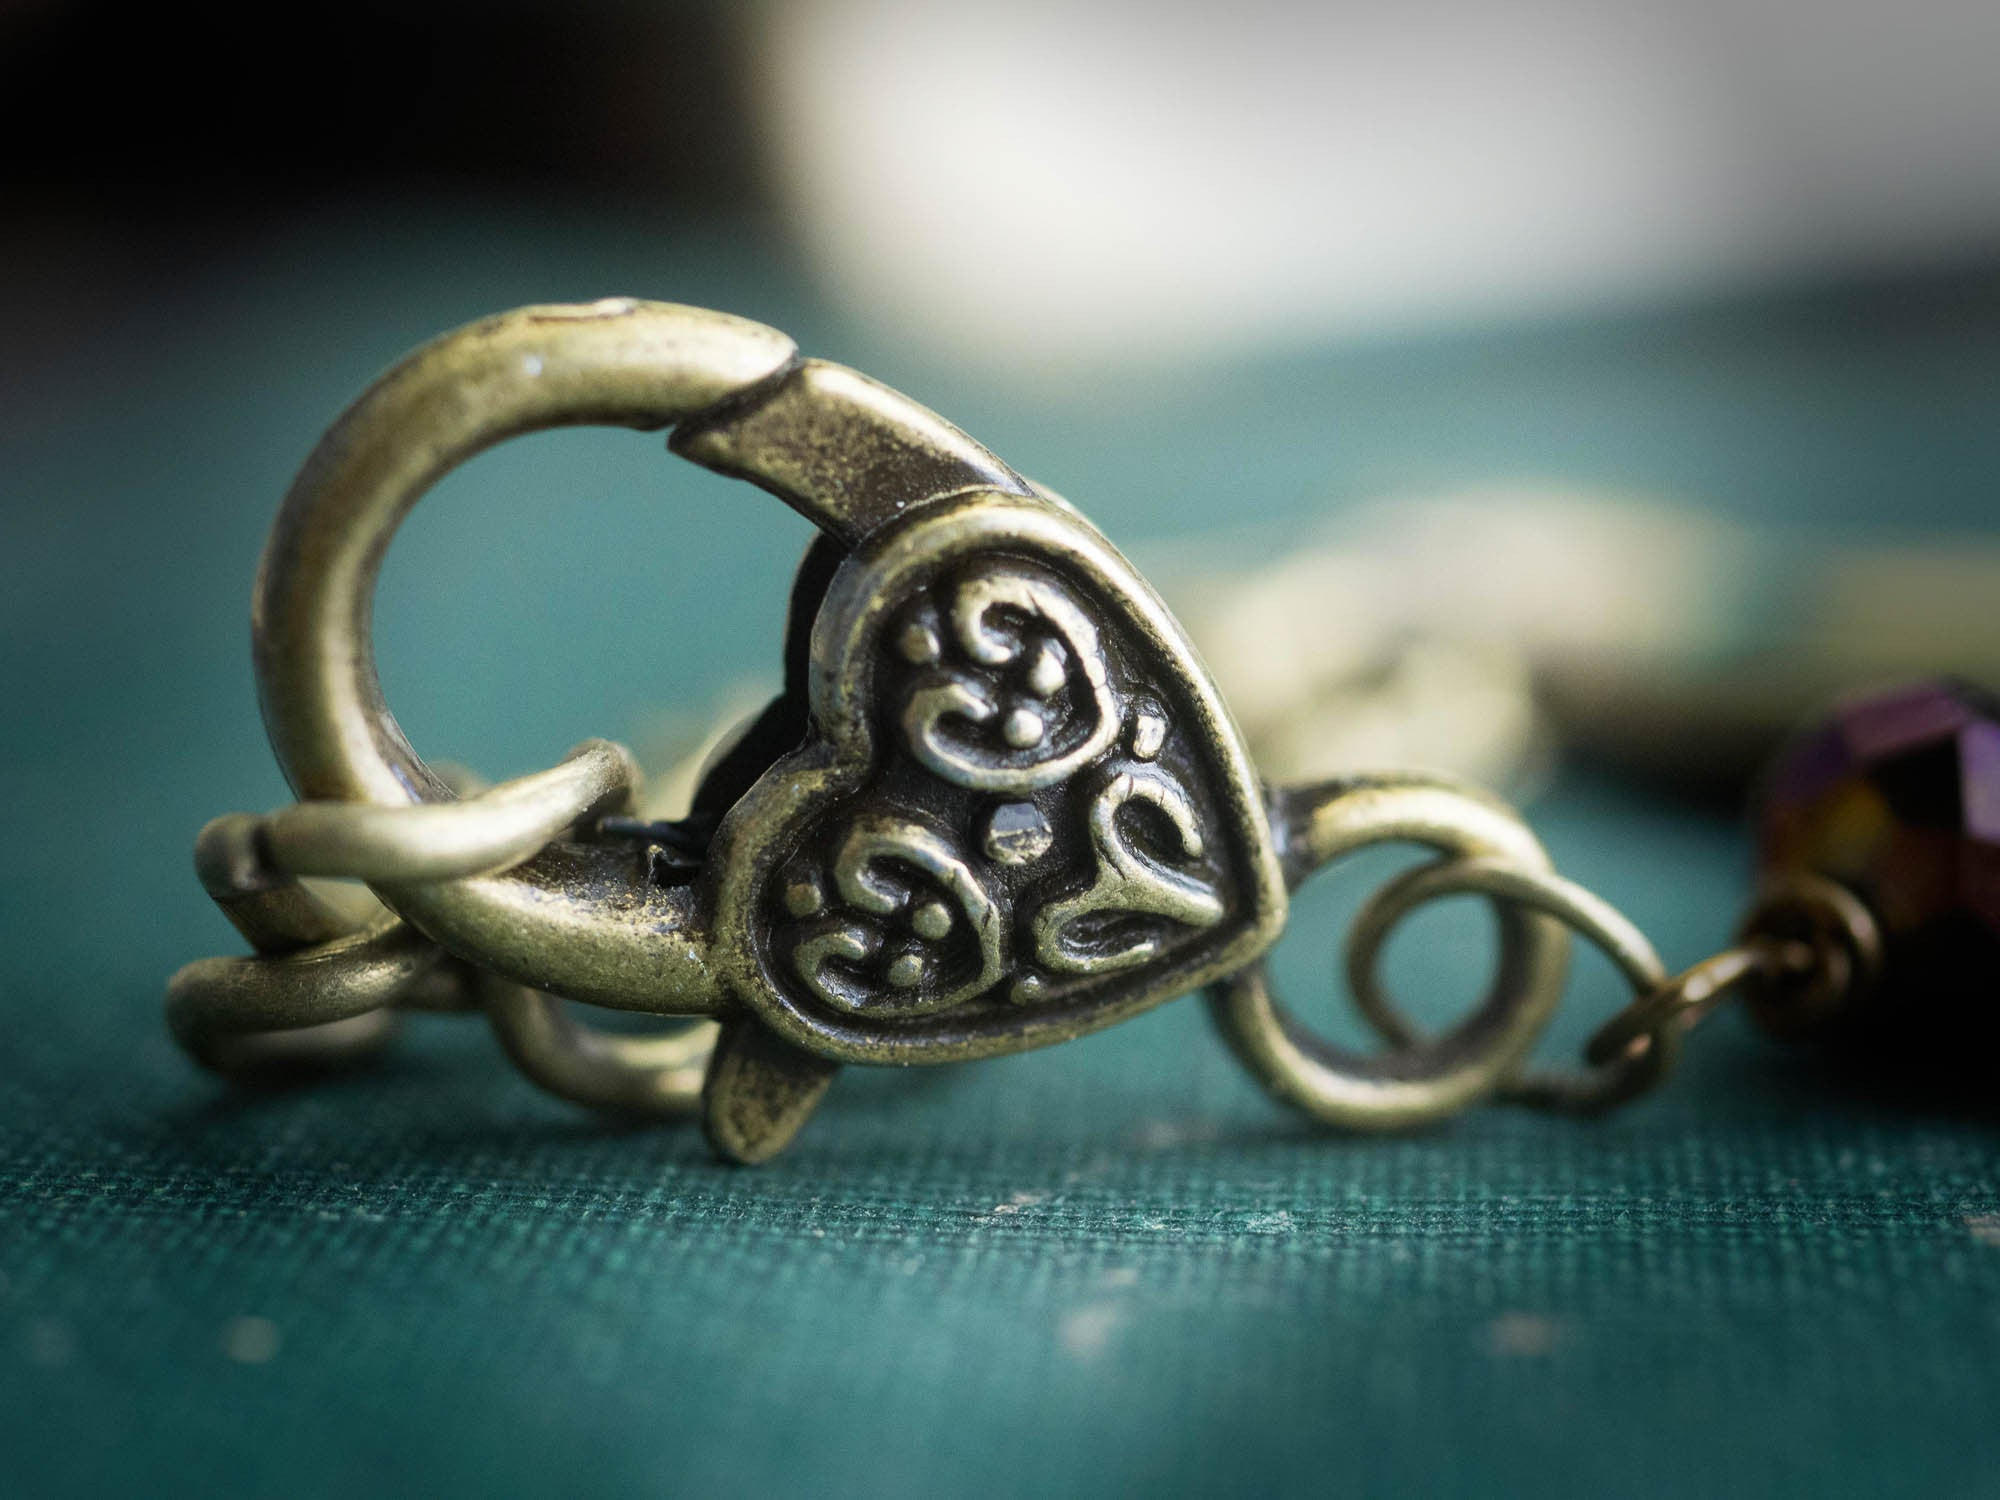 Heart shaped clasp completes the lovely and romantic look of Danita's original jewelry, totally handmade in Danita's studio.